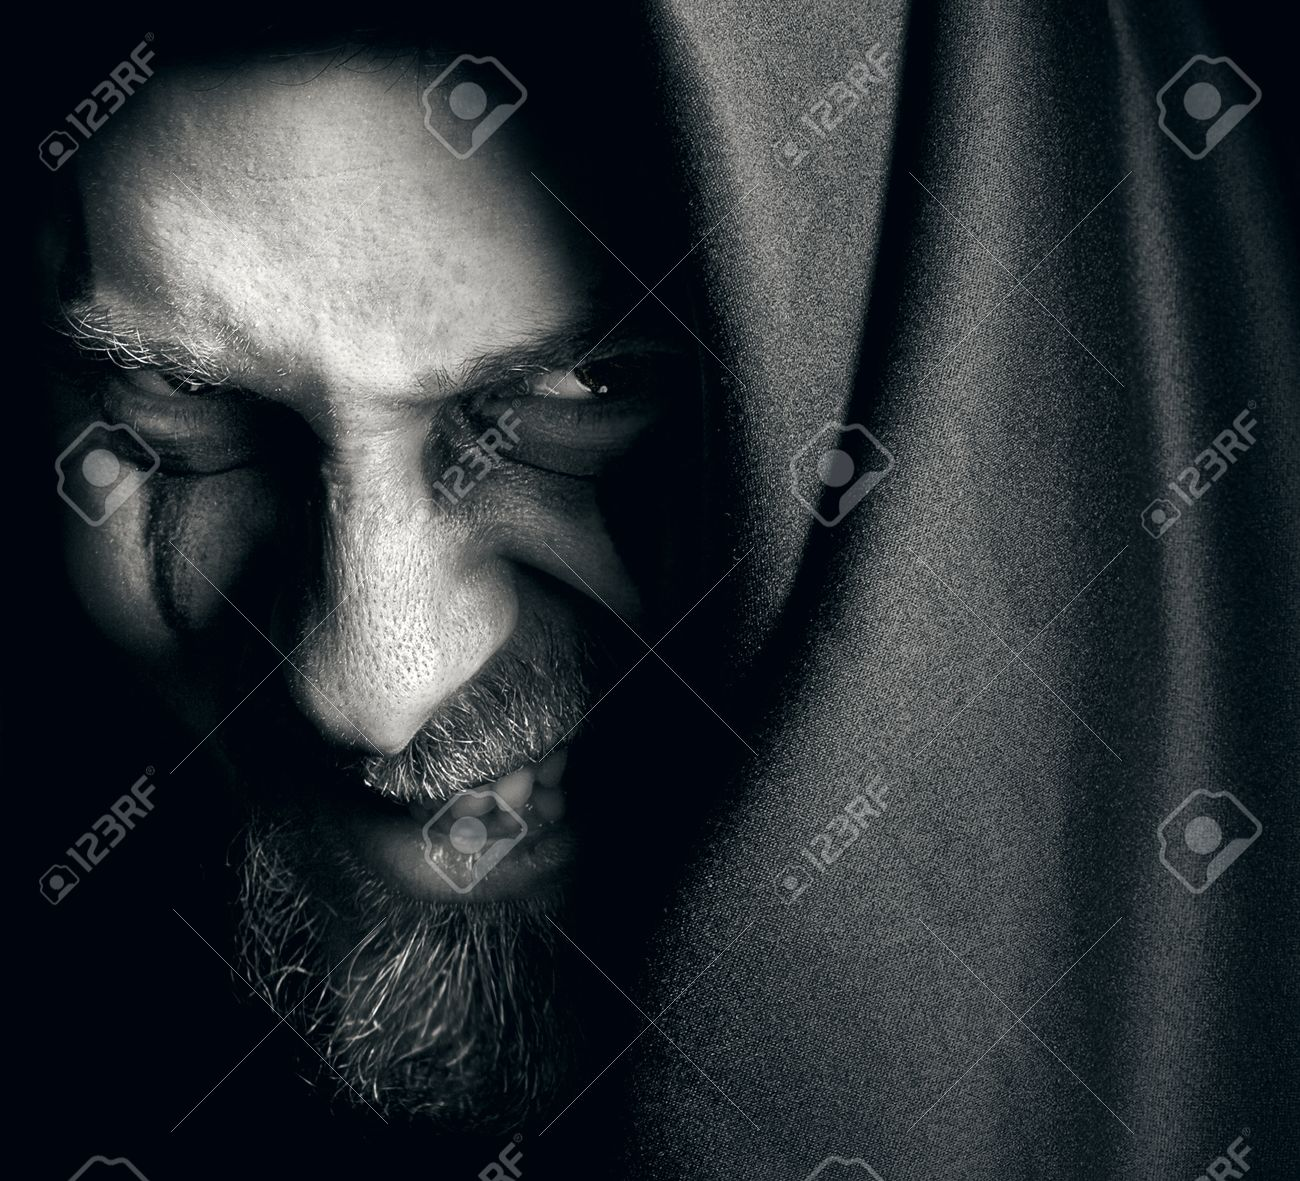 Evil sinister man with malefic grin Stock Photo - 55827437